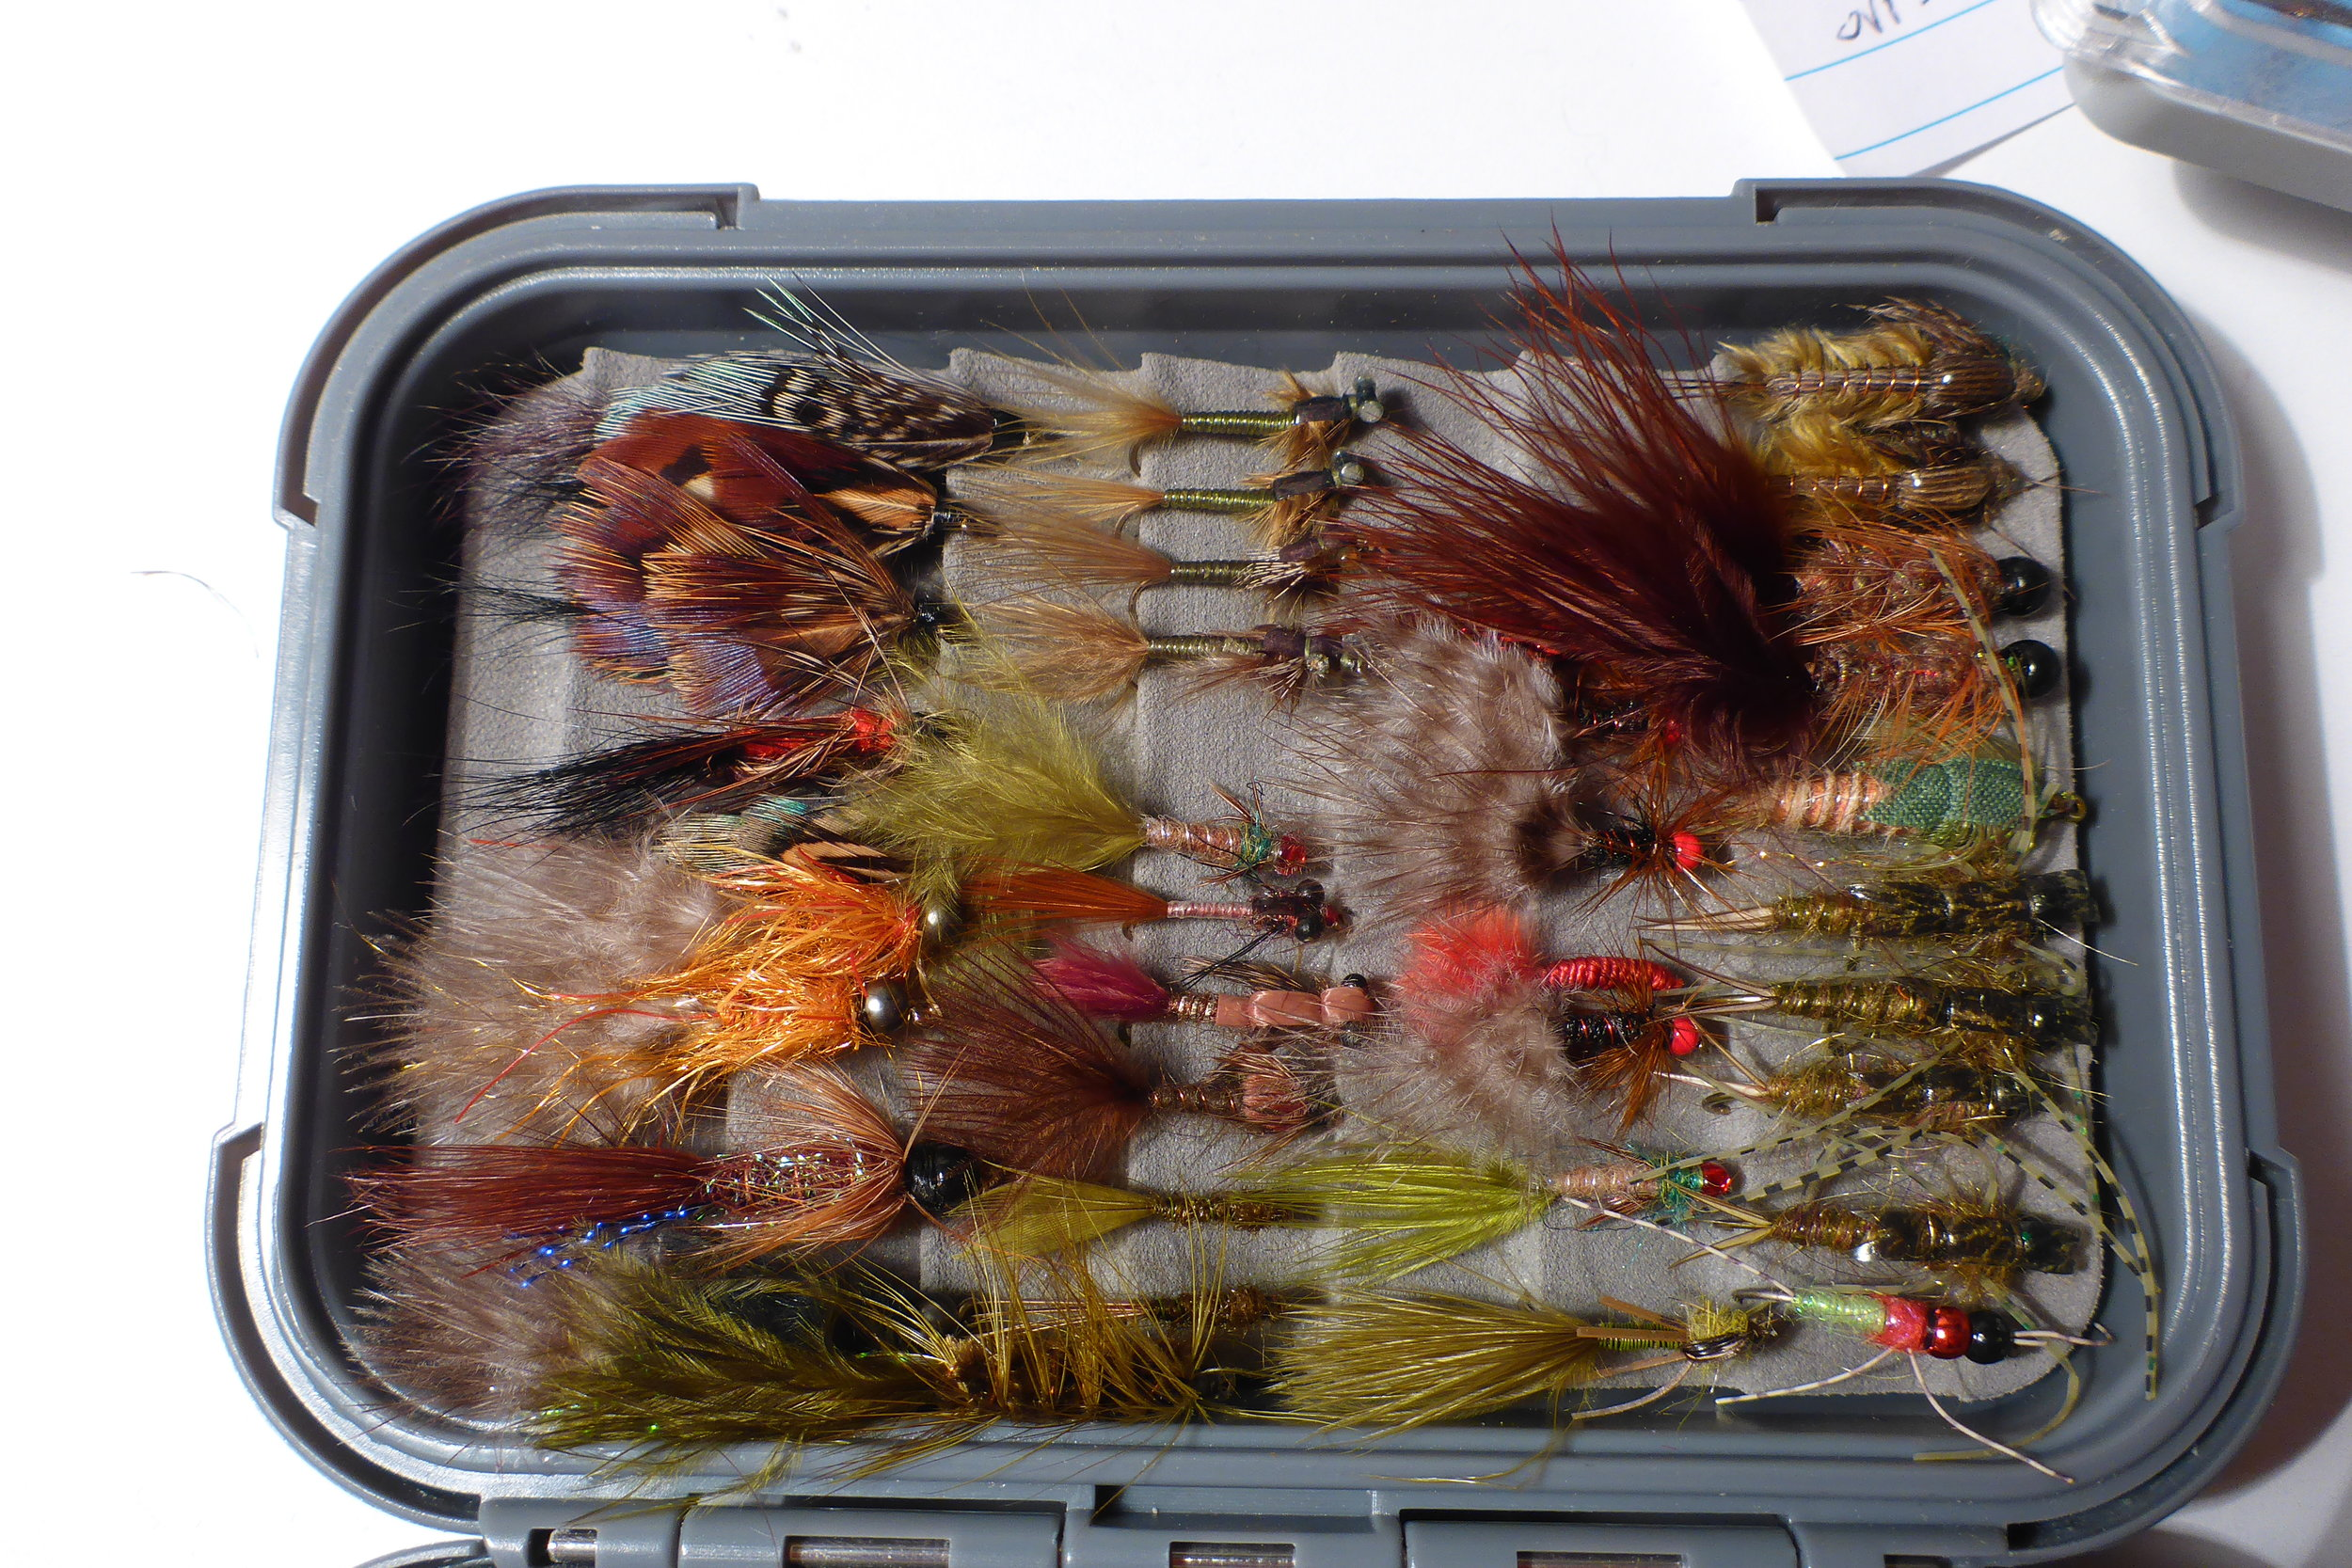 Still water flies - small buggers, damsels etc perfect for around the wee beds.